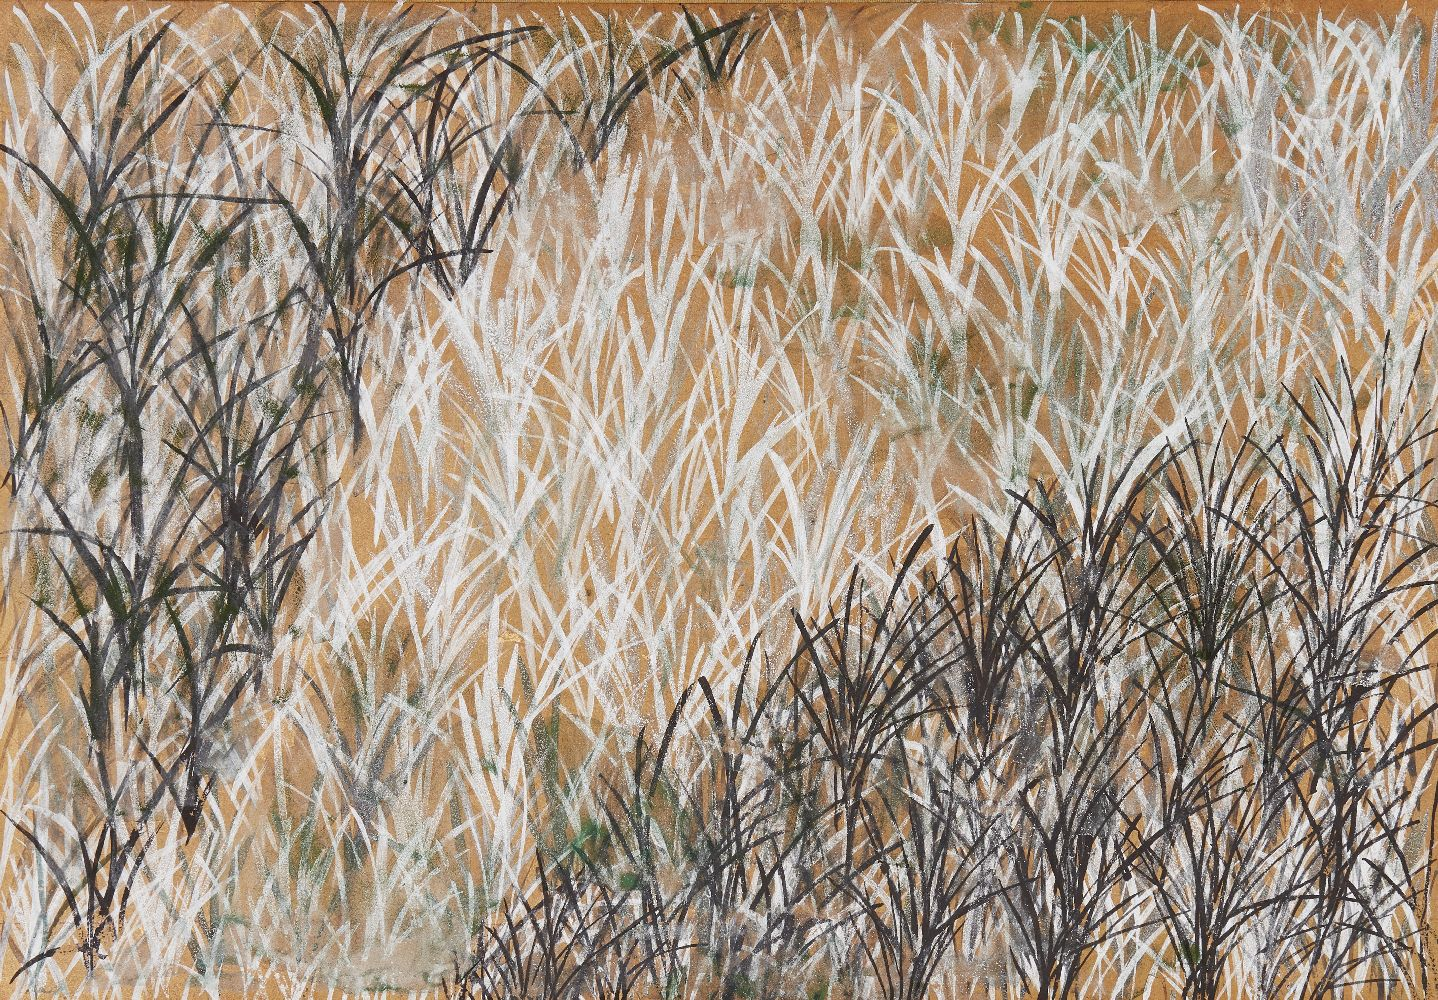 A Japanese painting of seagrass, 20th century, ink and colour on paper, mounted in brocade screen - Image 2 of 3